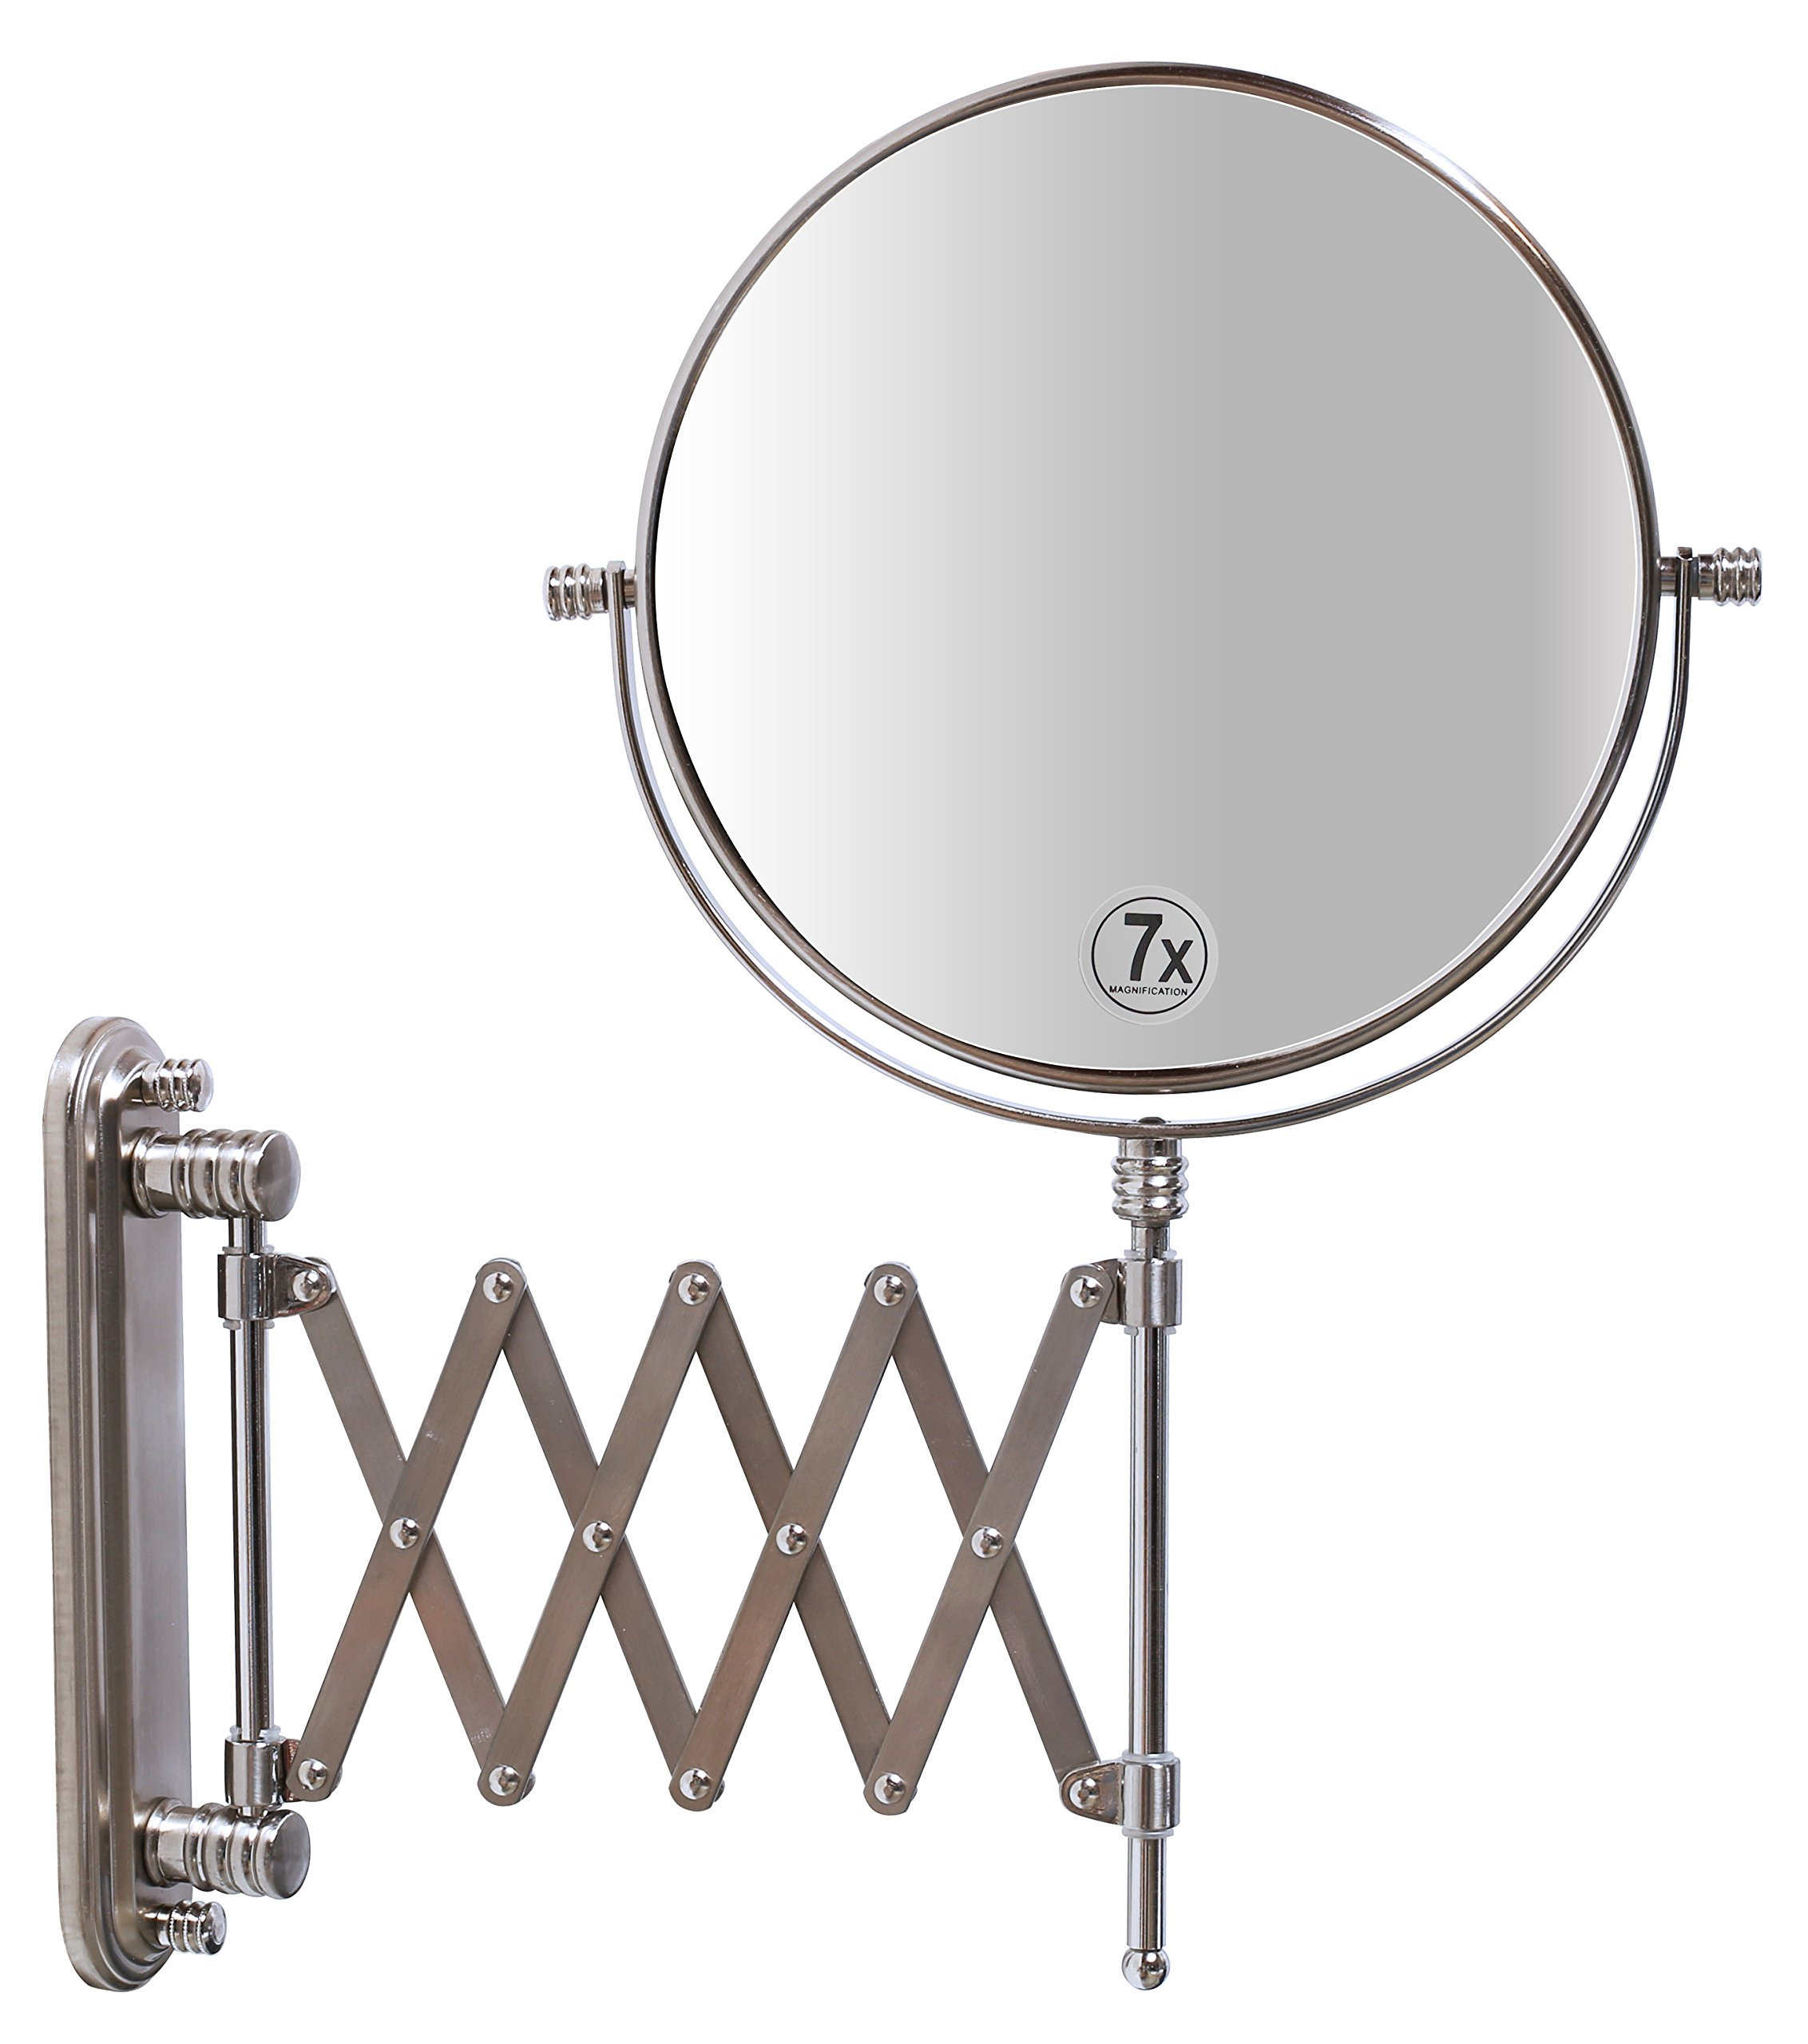 DecoBros 8-Inch Two-Sided Extension Wall Mount Mirror with 7x Magnification, 13.5-Inch Extension, Nickel